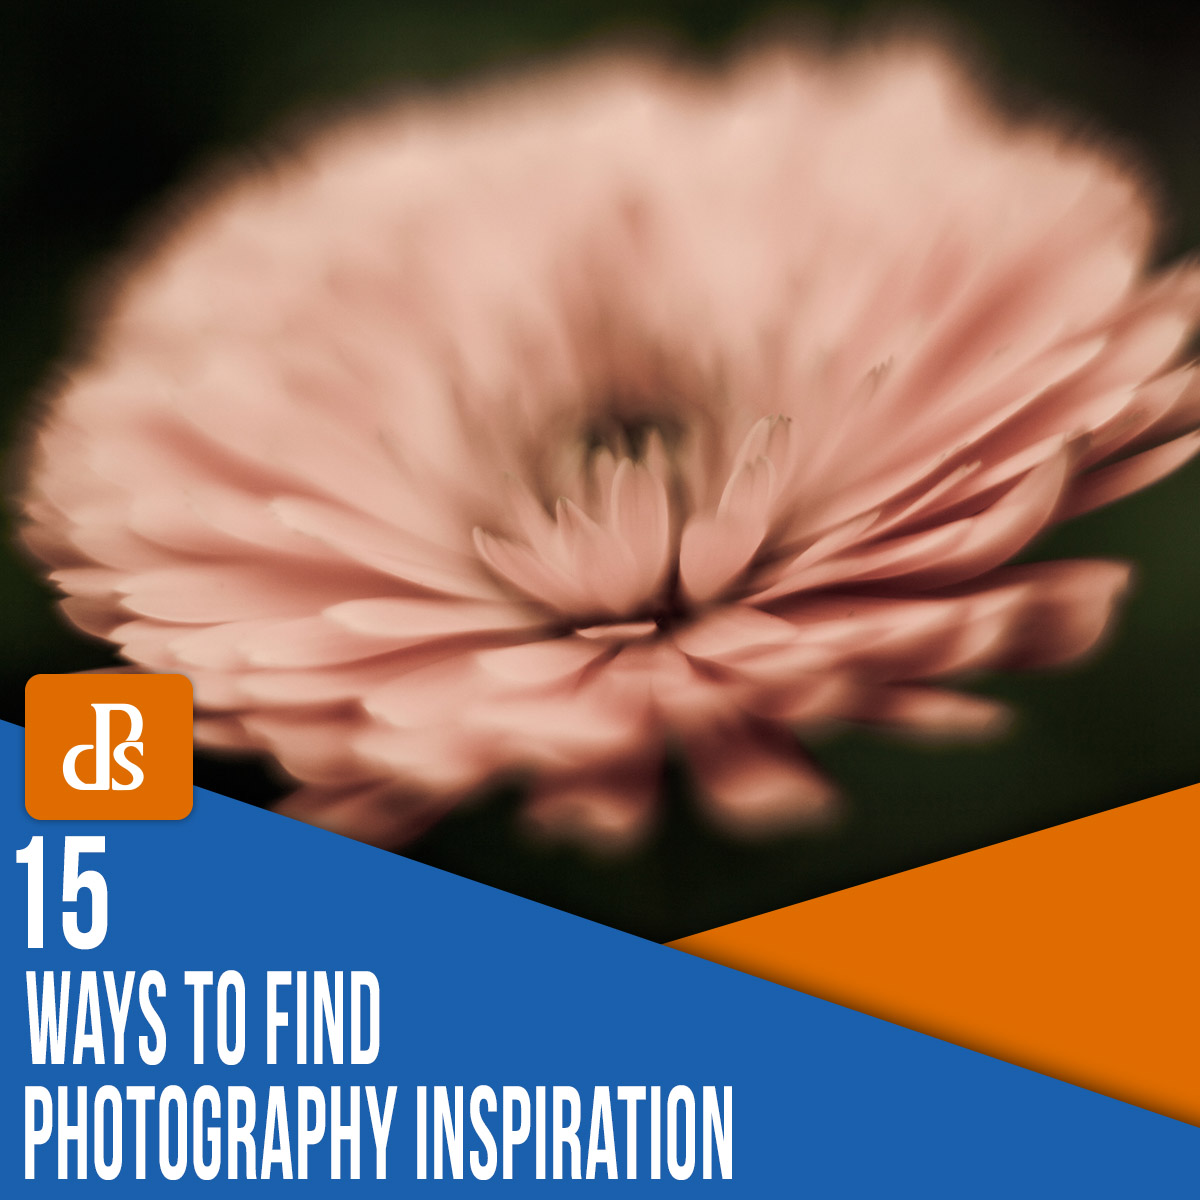 ways to find photography inspiration